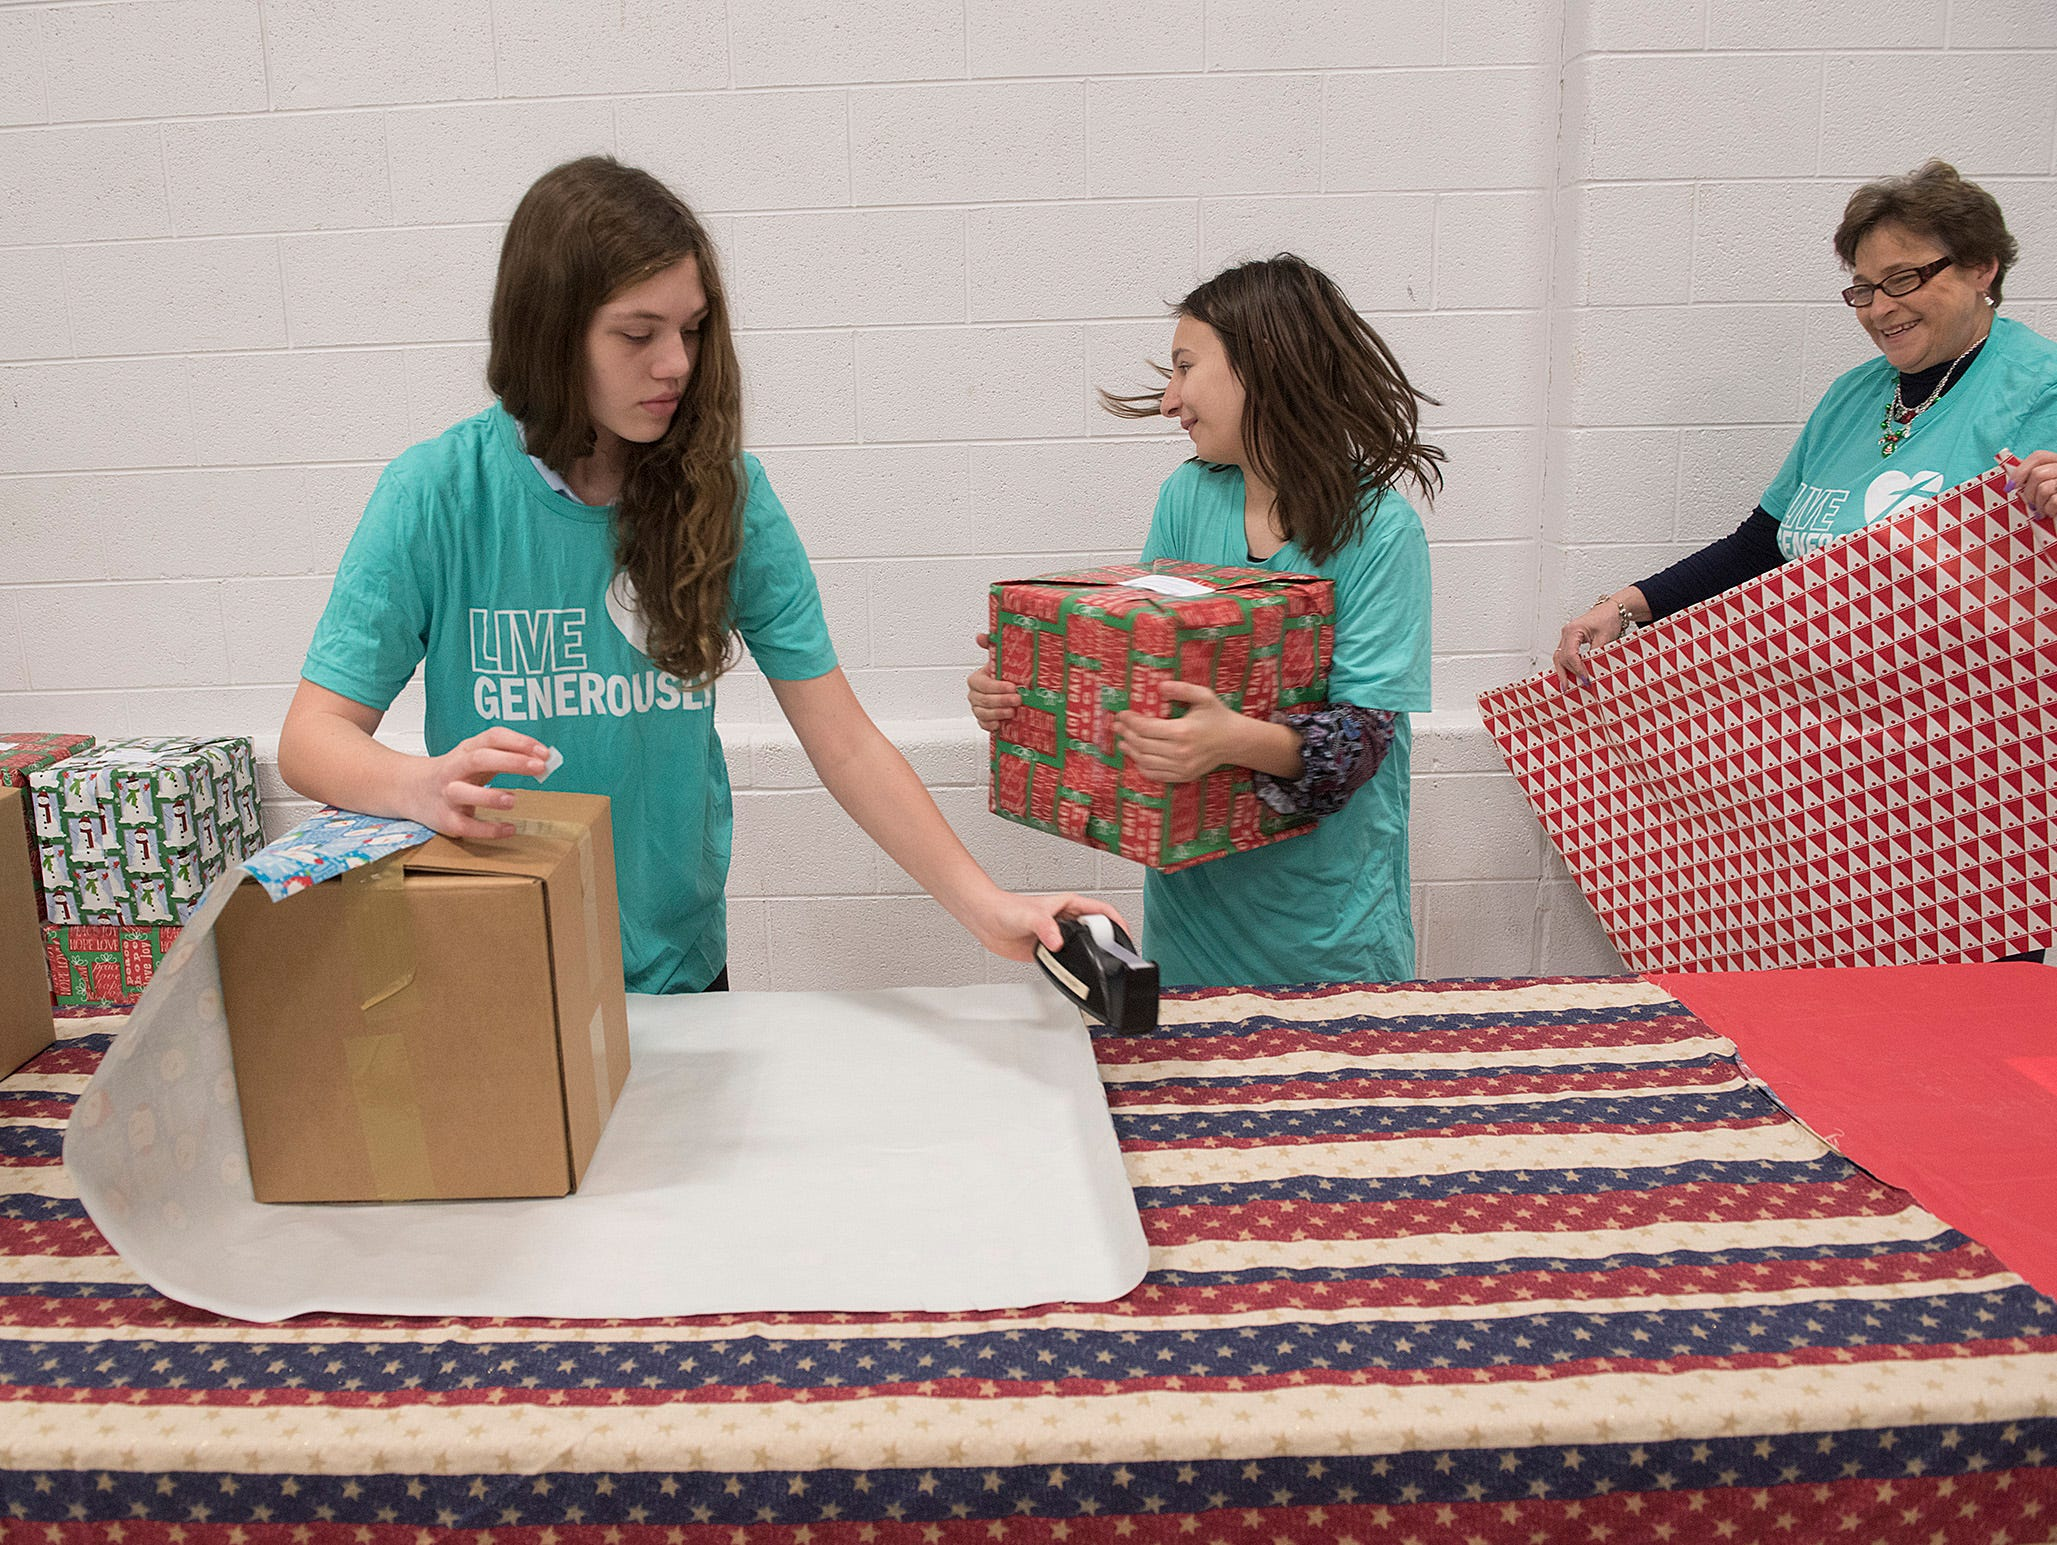 Samantha Emery and Dakota Gagnon wrap and move boxes. Principal Lori Bartholomew grabs another sheet of wrapping paper.